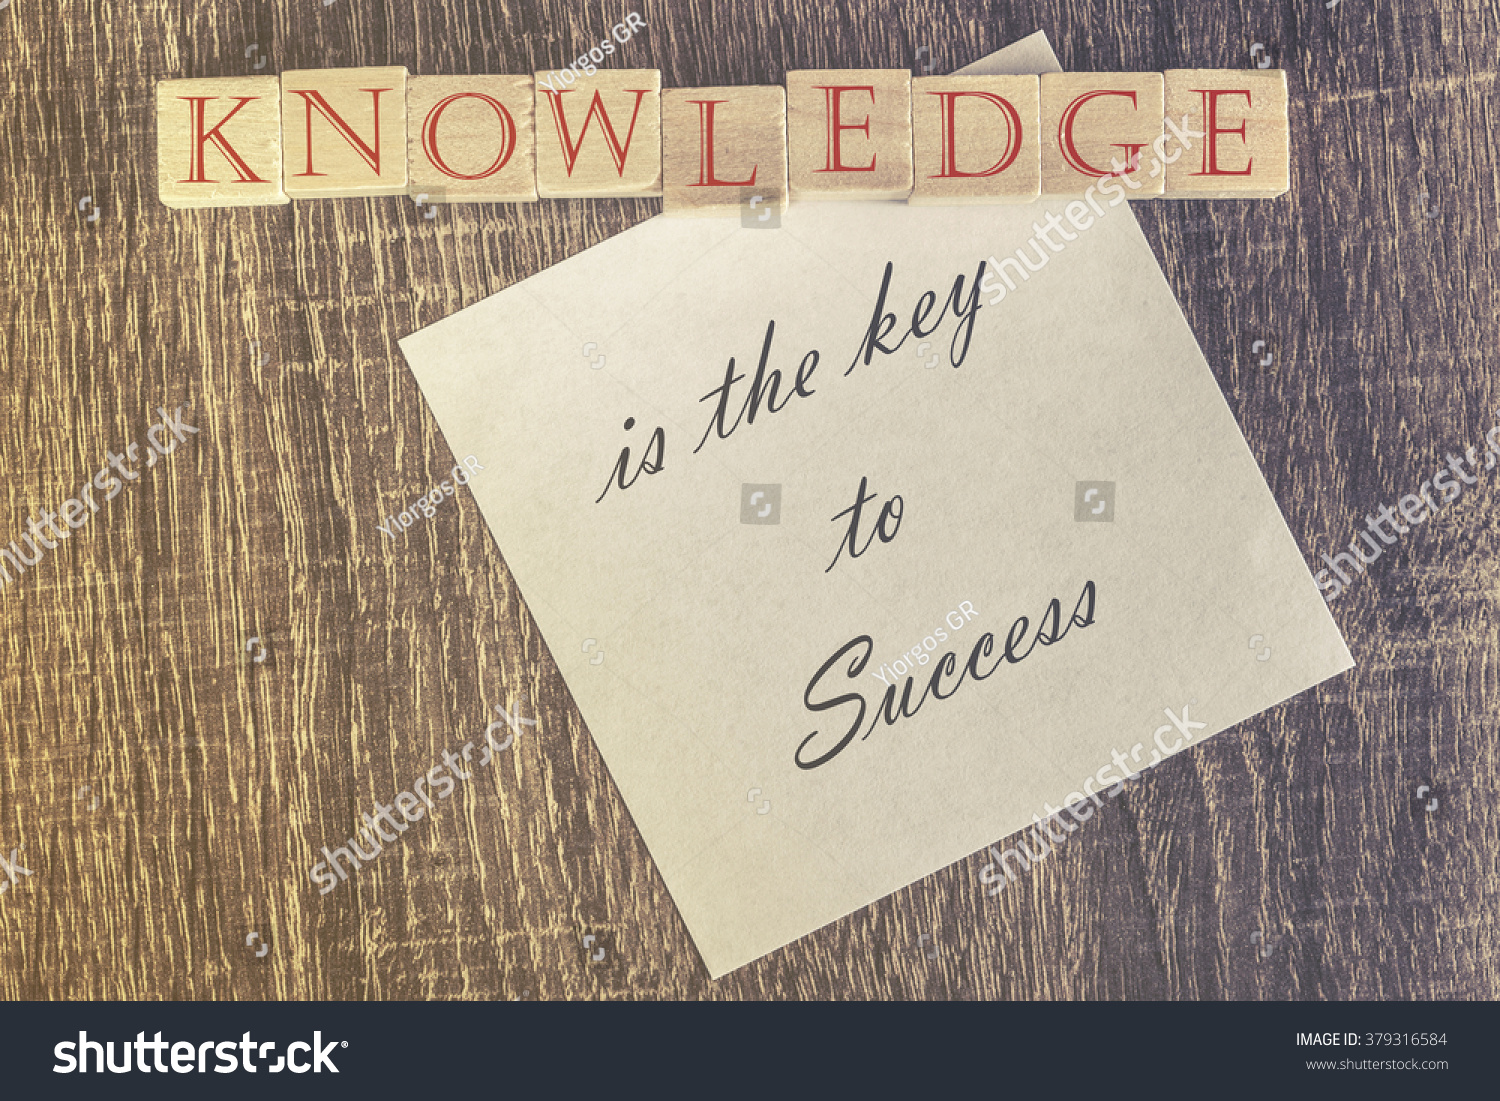 knowledge key success quote cross processed stock photo  knowledge is the key to success quote cross processed image for retro feeling